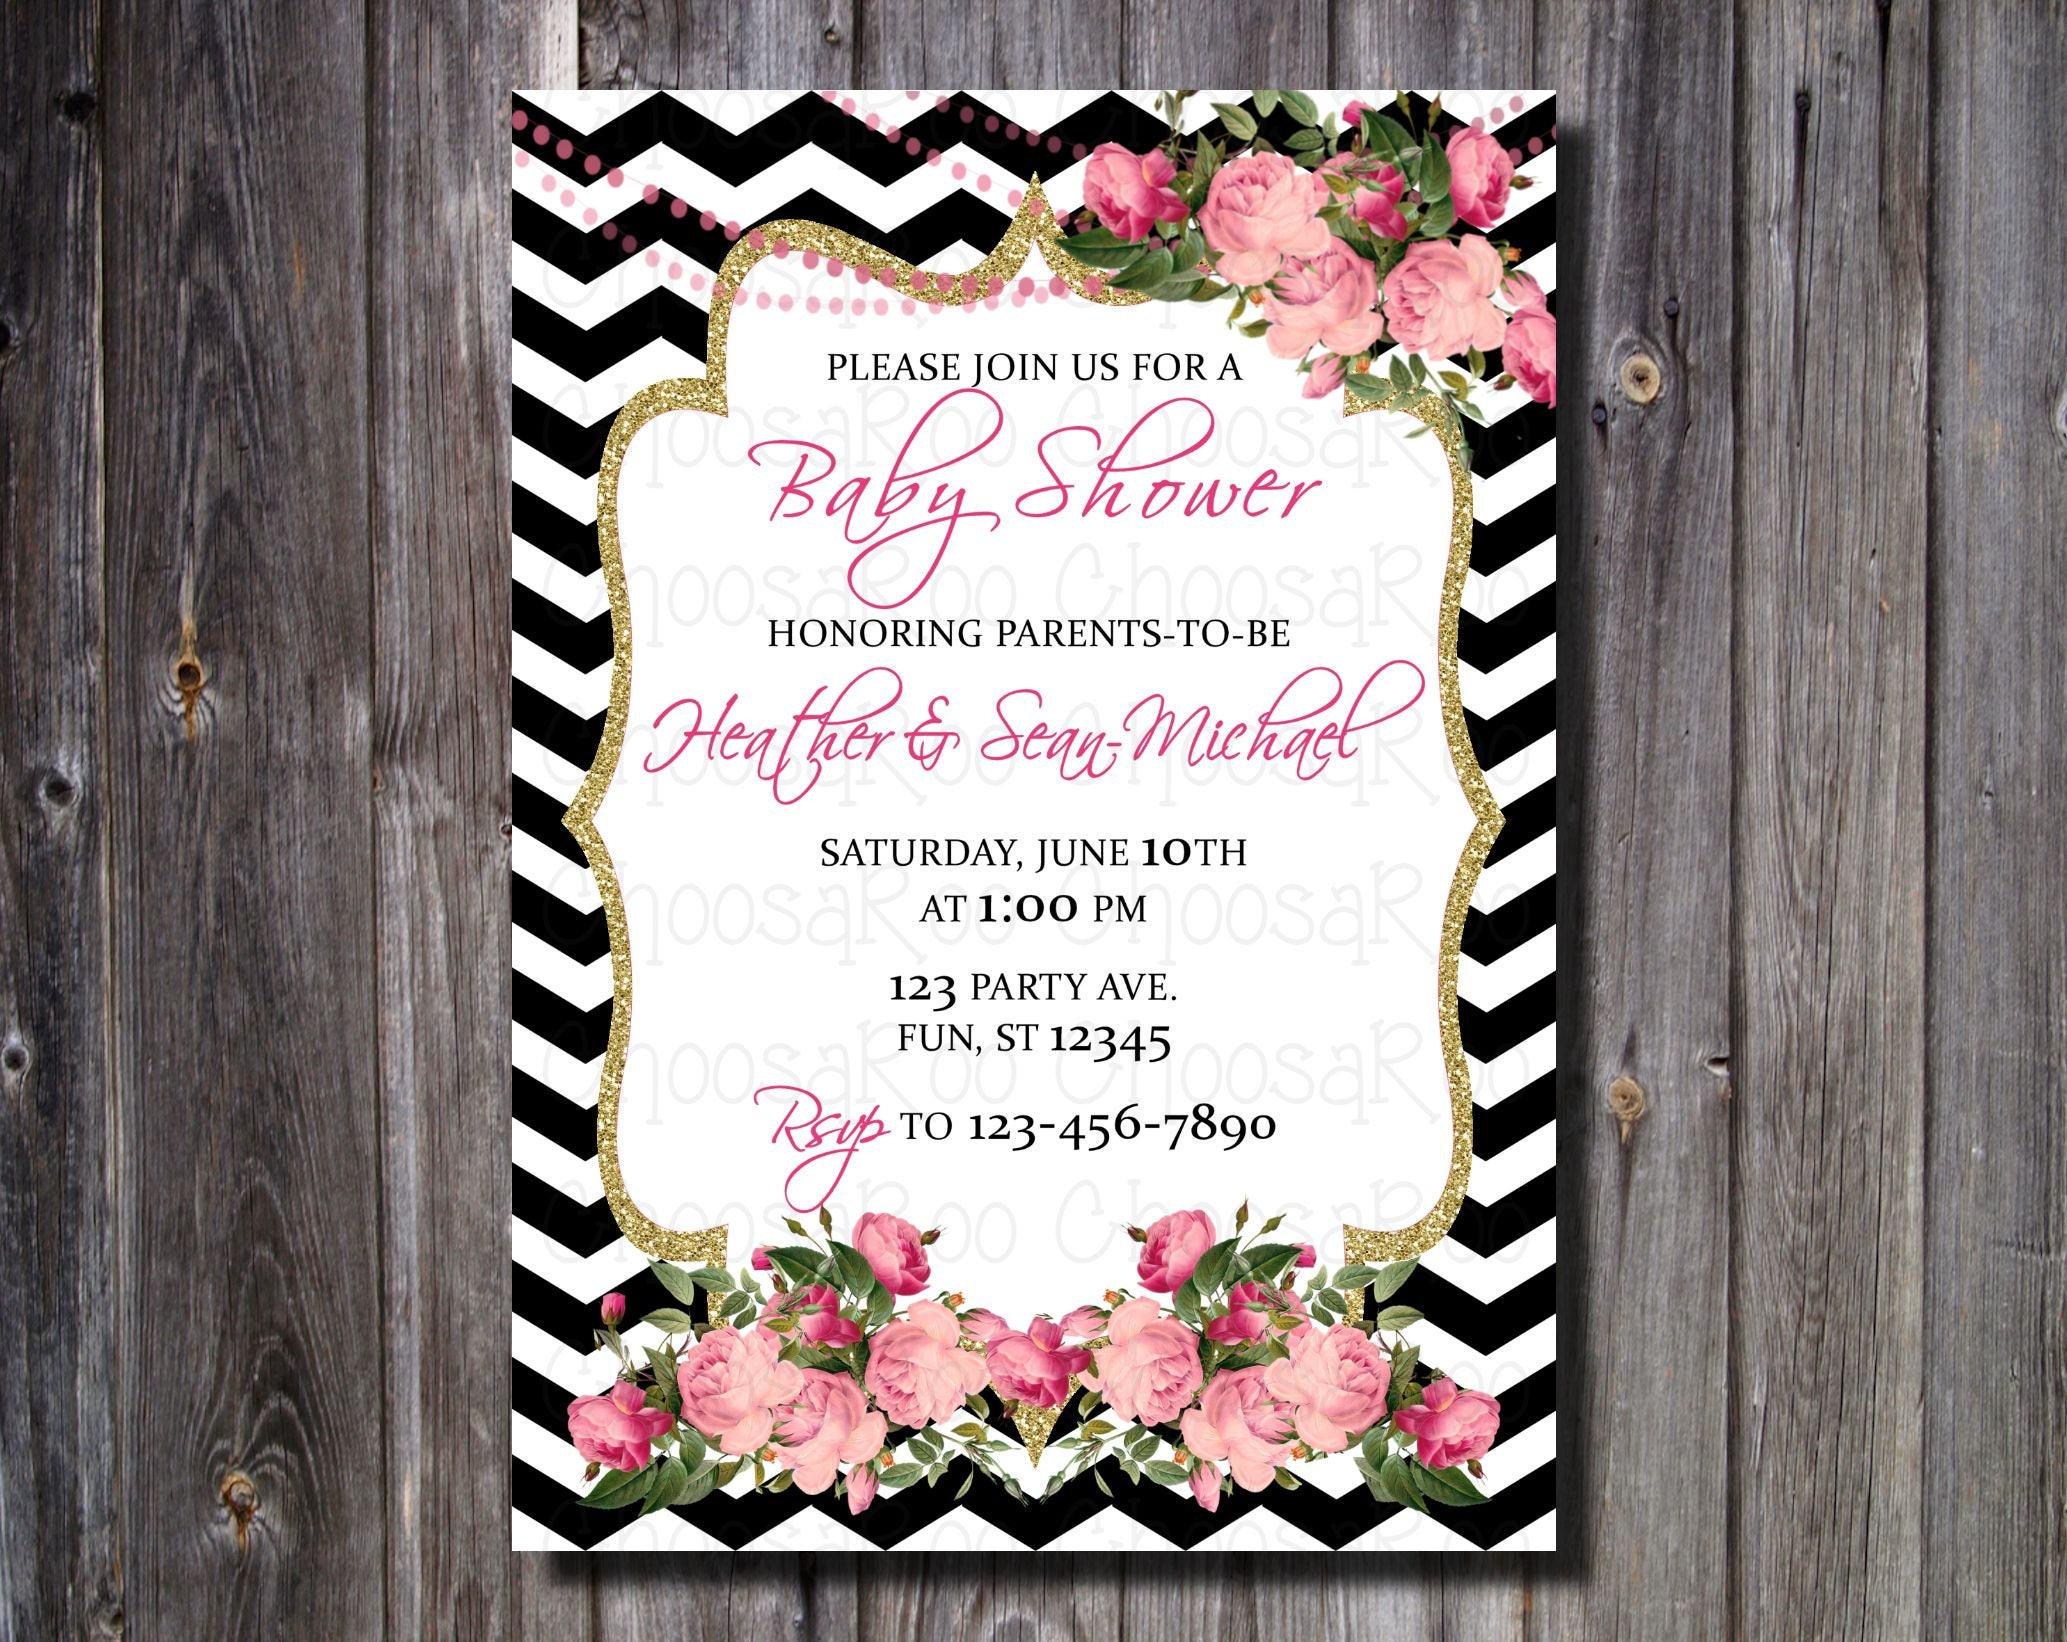 Rose   Black U0026 White Chevron   Baby Girl Baby Shower Invitation   Personalized! Easy To Print!